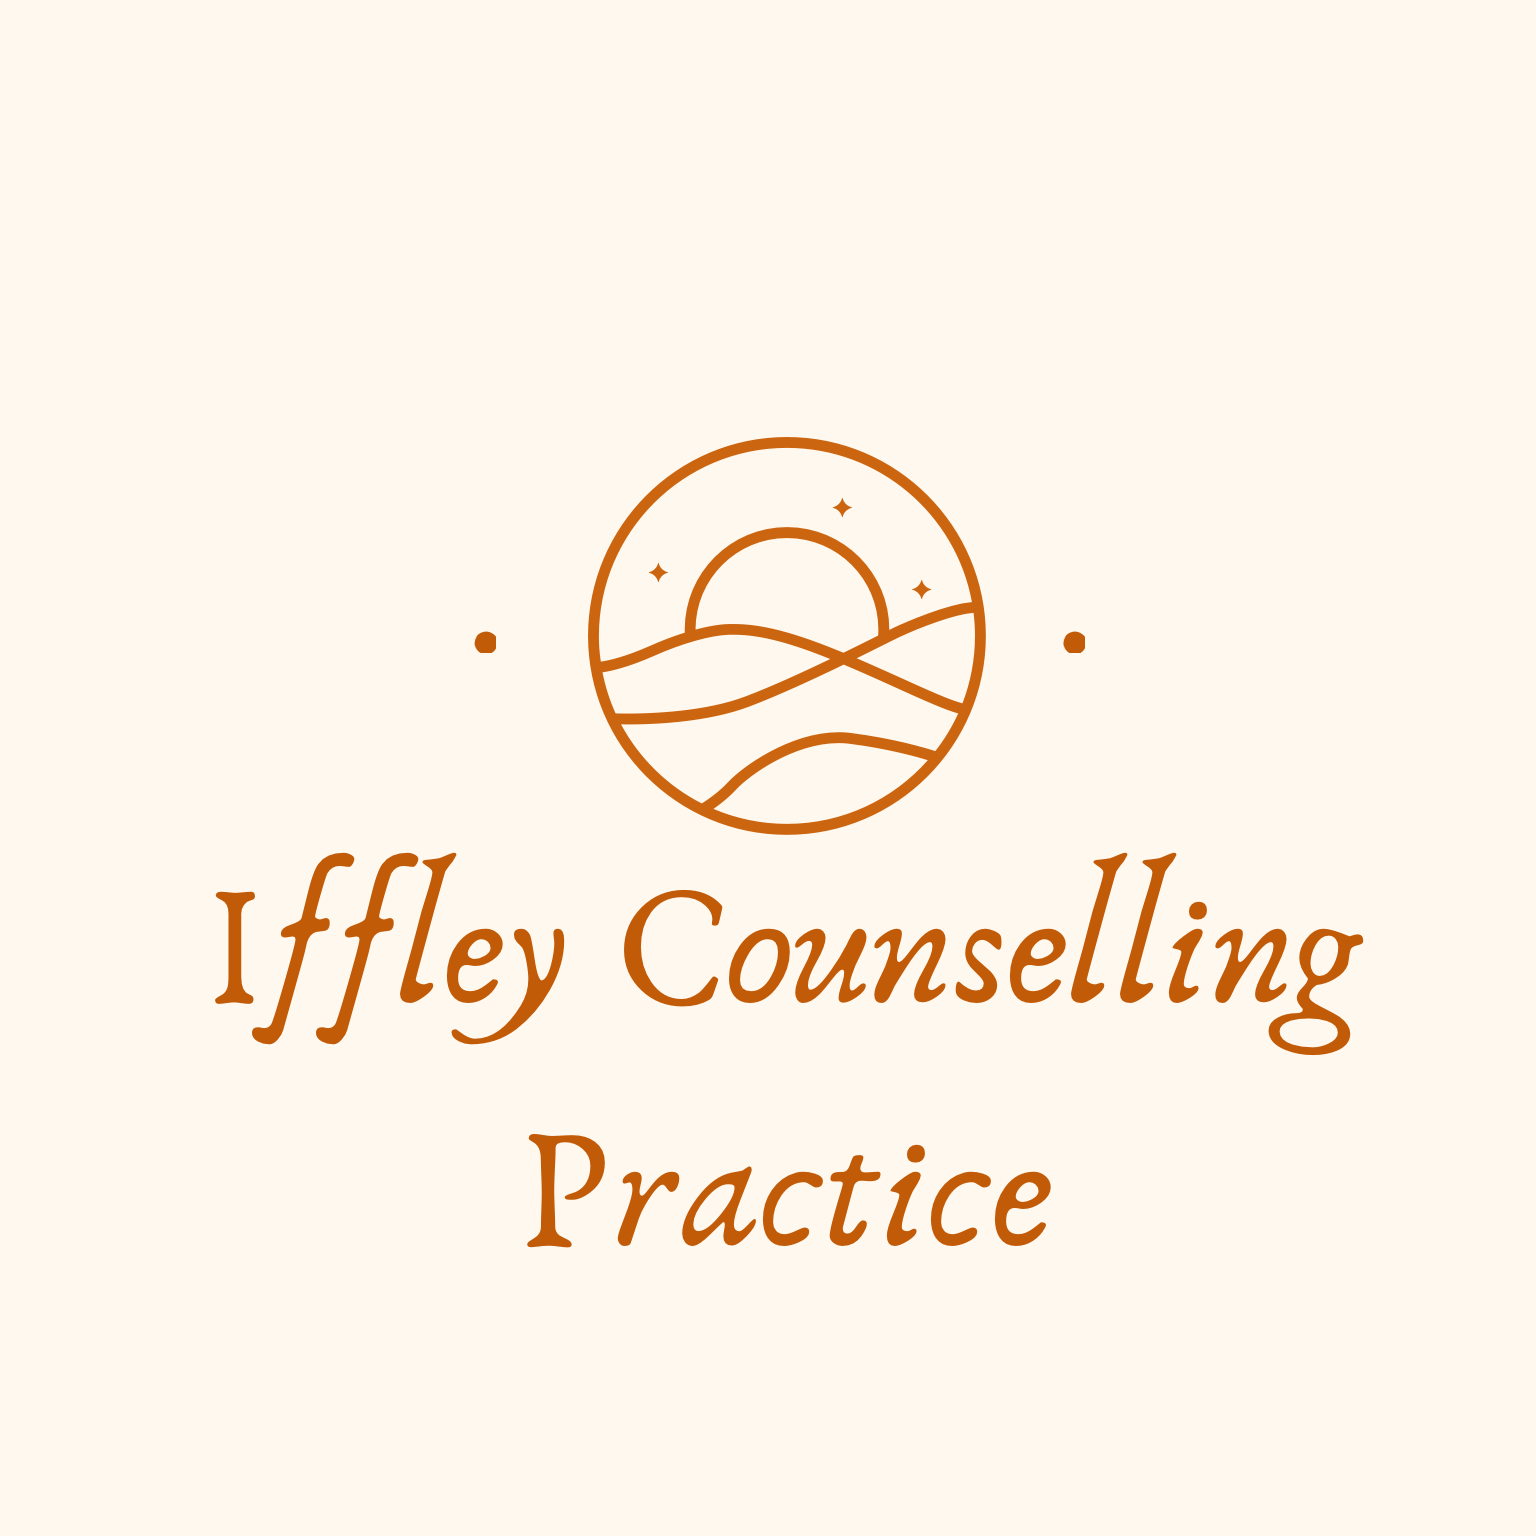 Iffley Counselling Practice